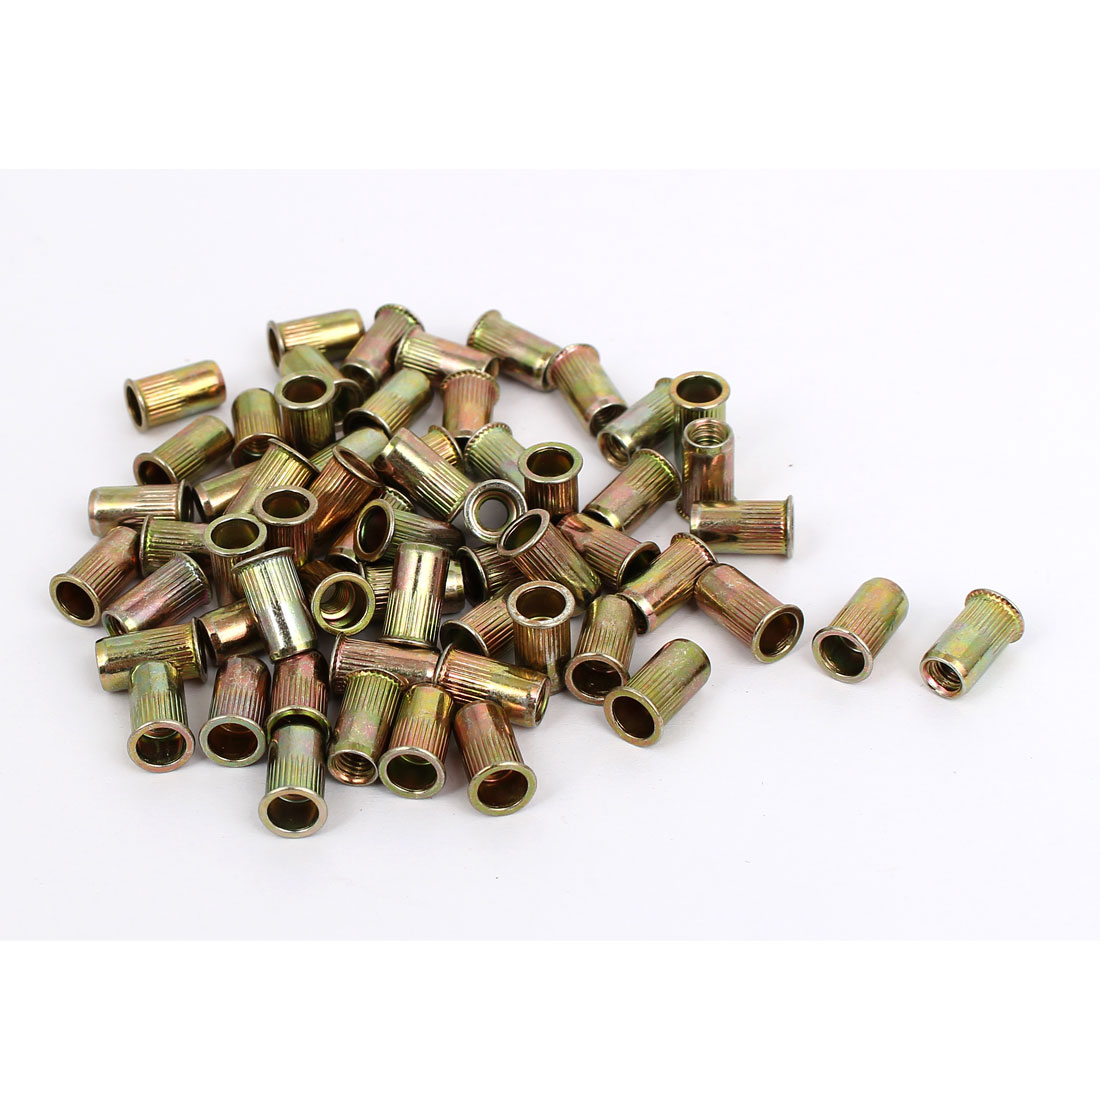 M4 Thread Dia Zinc Plated Rivet Nut Insert Nutsert Brass Tone 60pcs